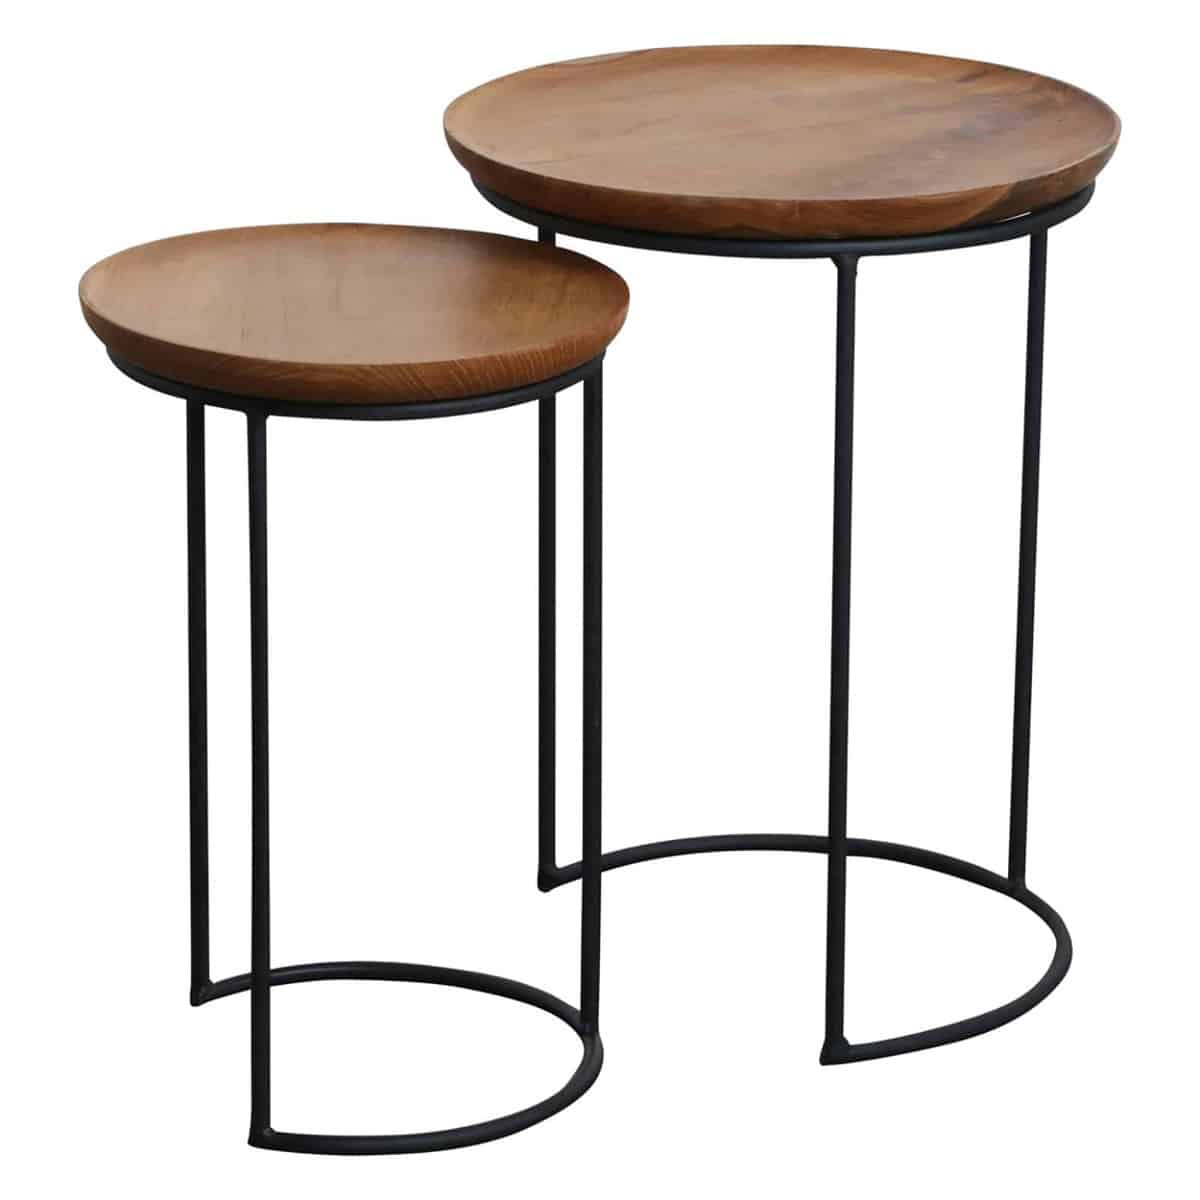 Double nesting wooden side tables